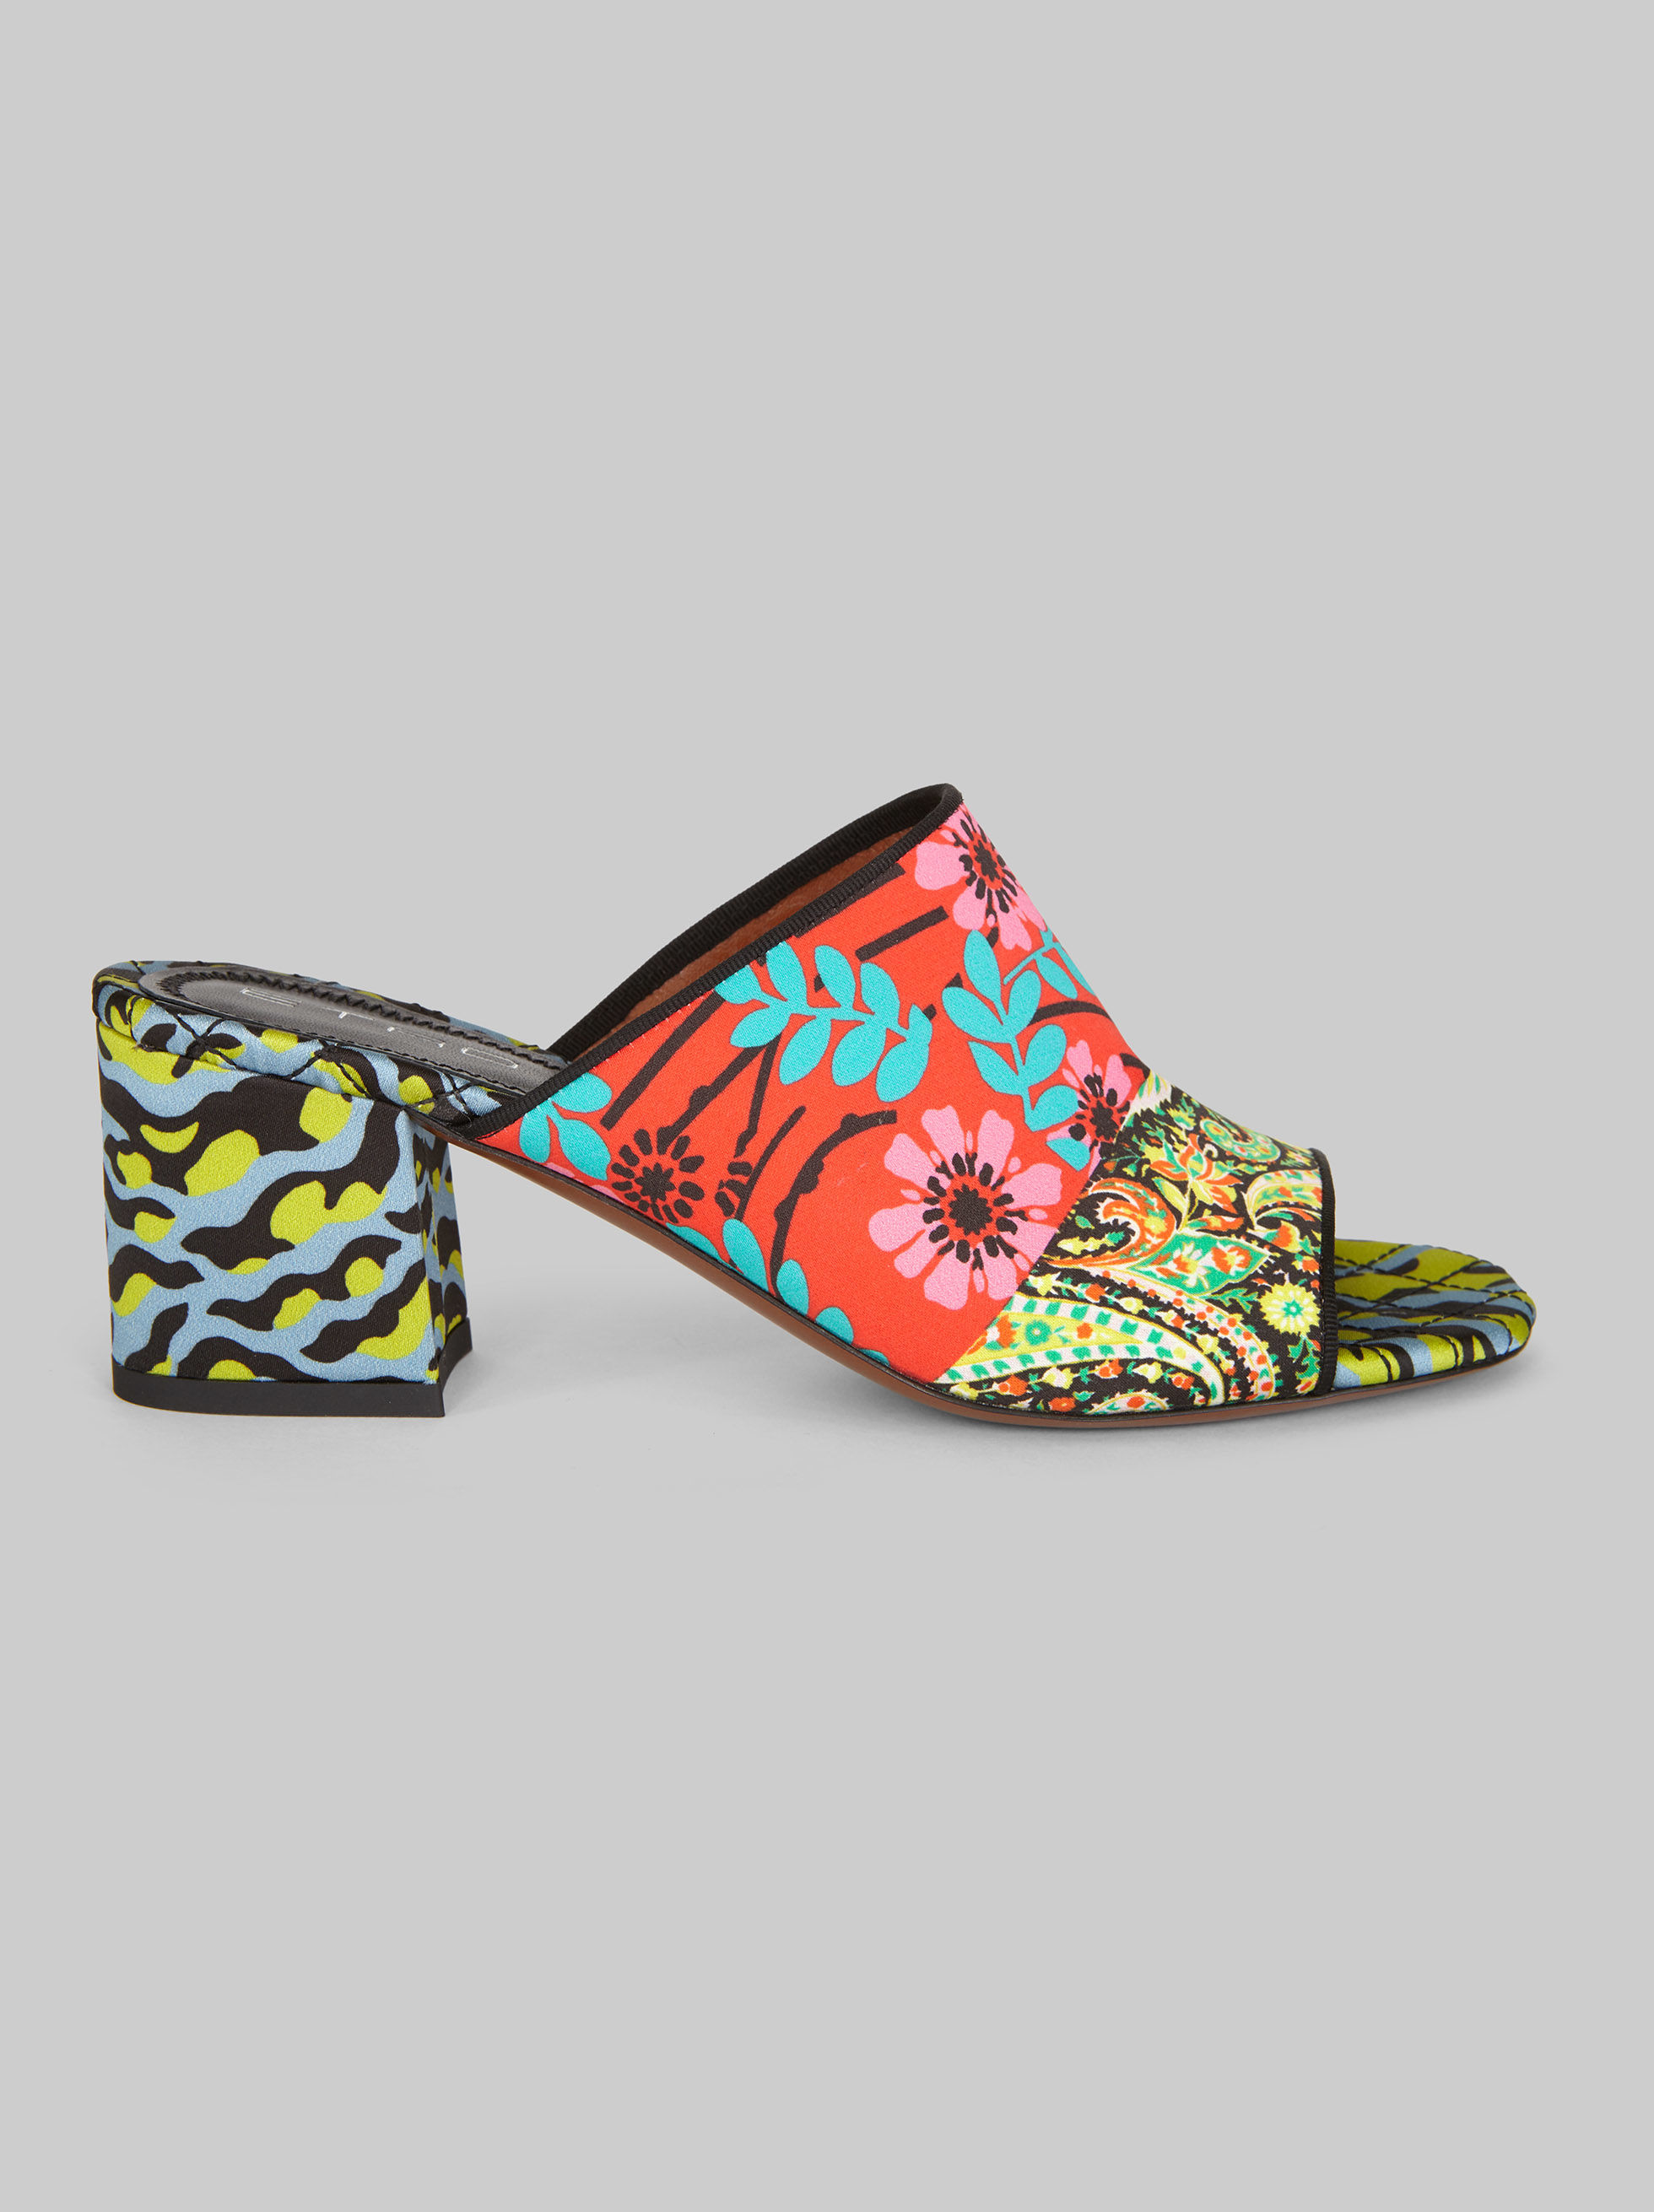 PATCHWORK-PRINT SATIN SANDALS